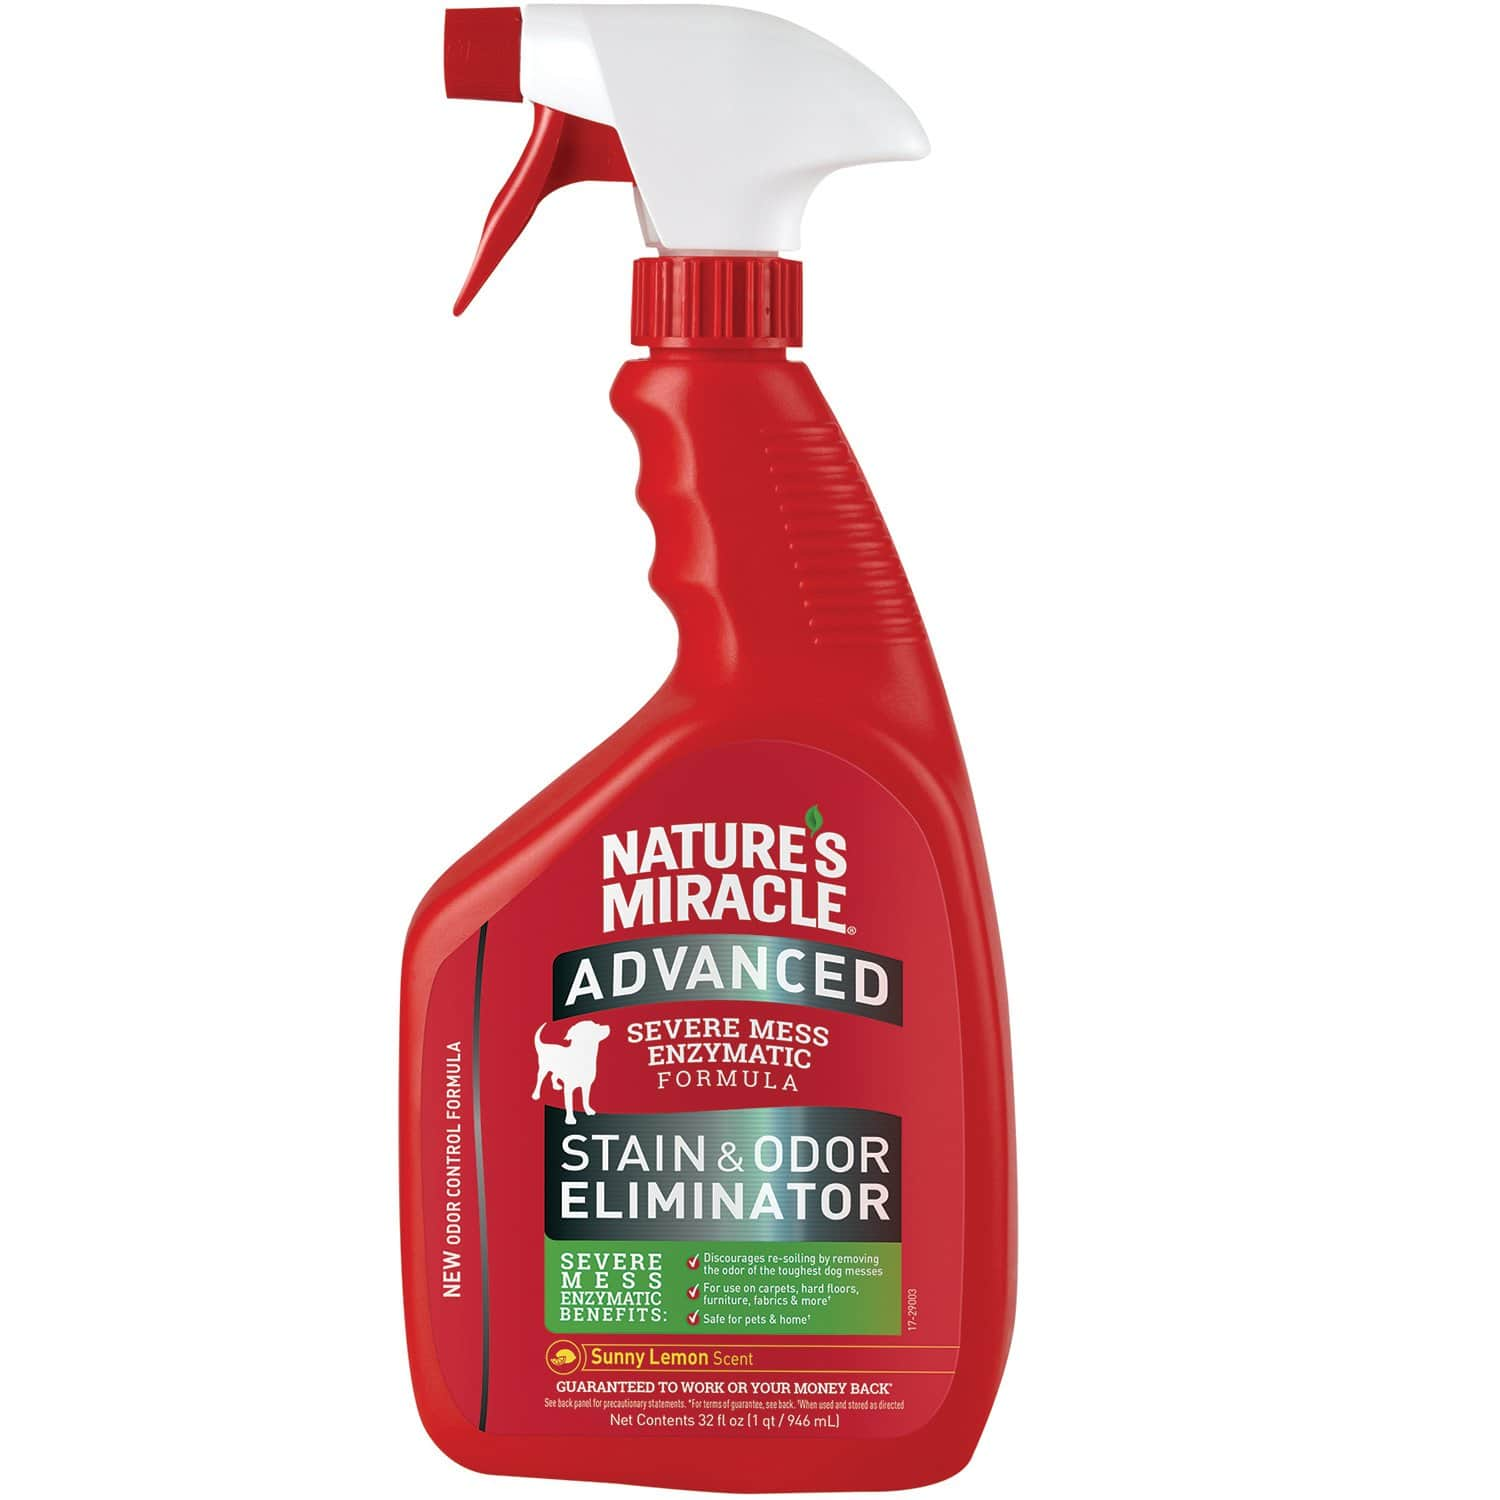 YMMV Nature's Miracle Dog Stain and Odor eliminator- starting at $2.33 w/ S&S